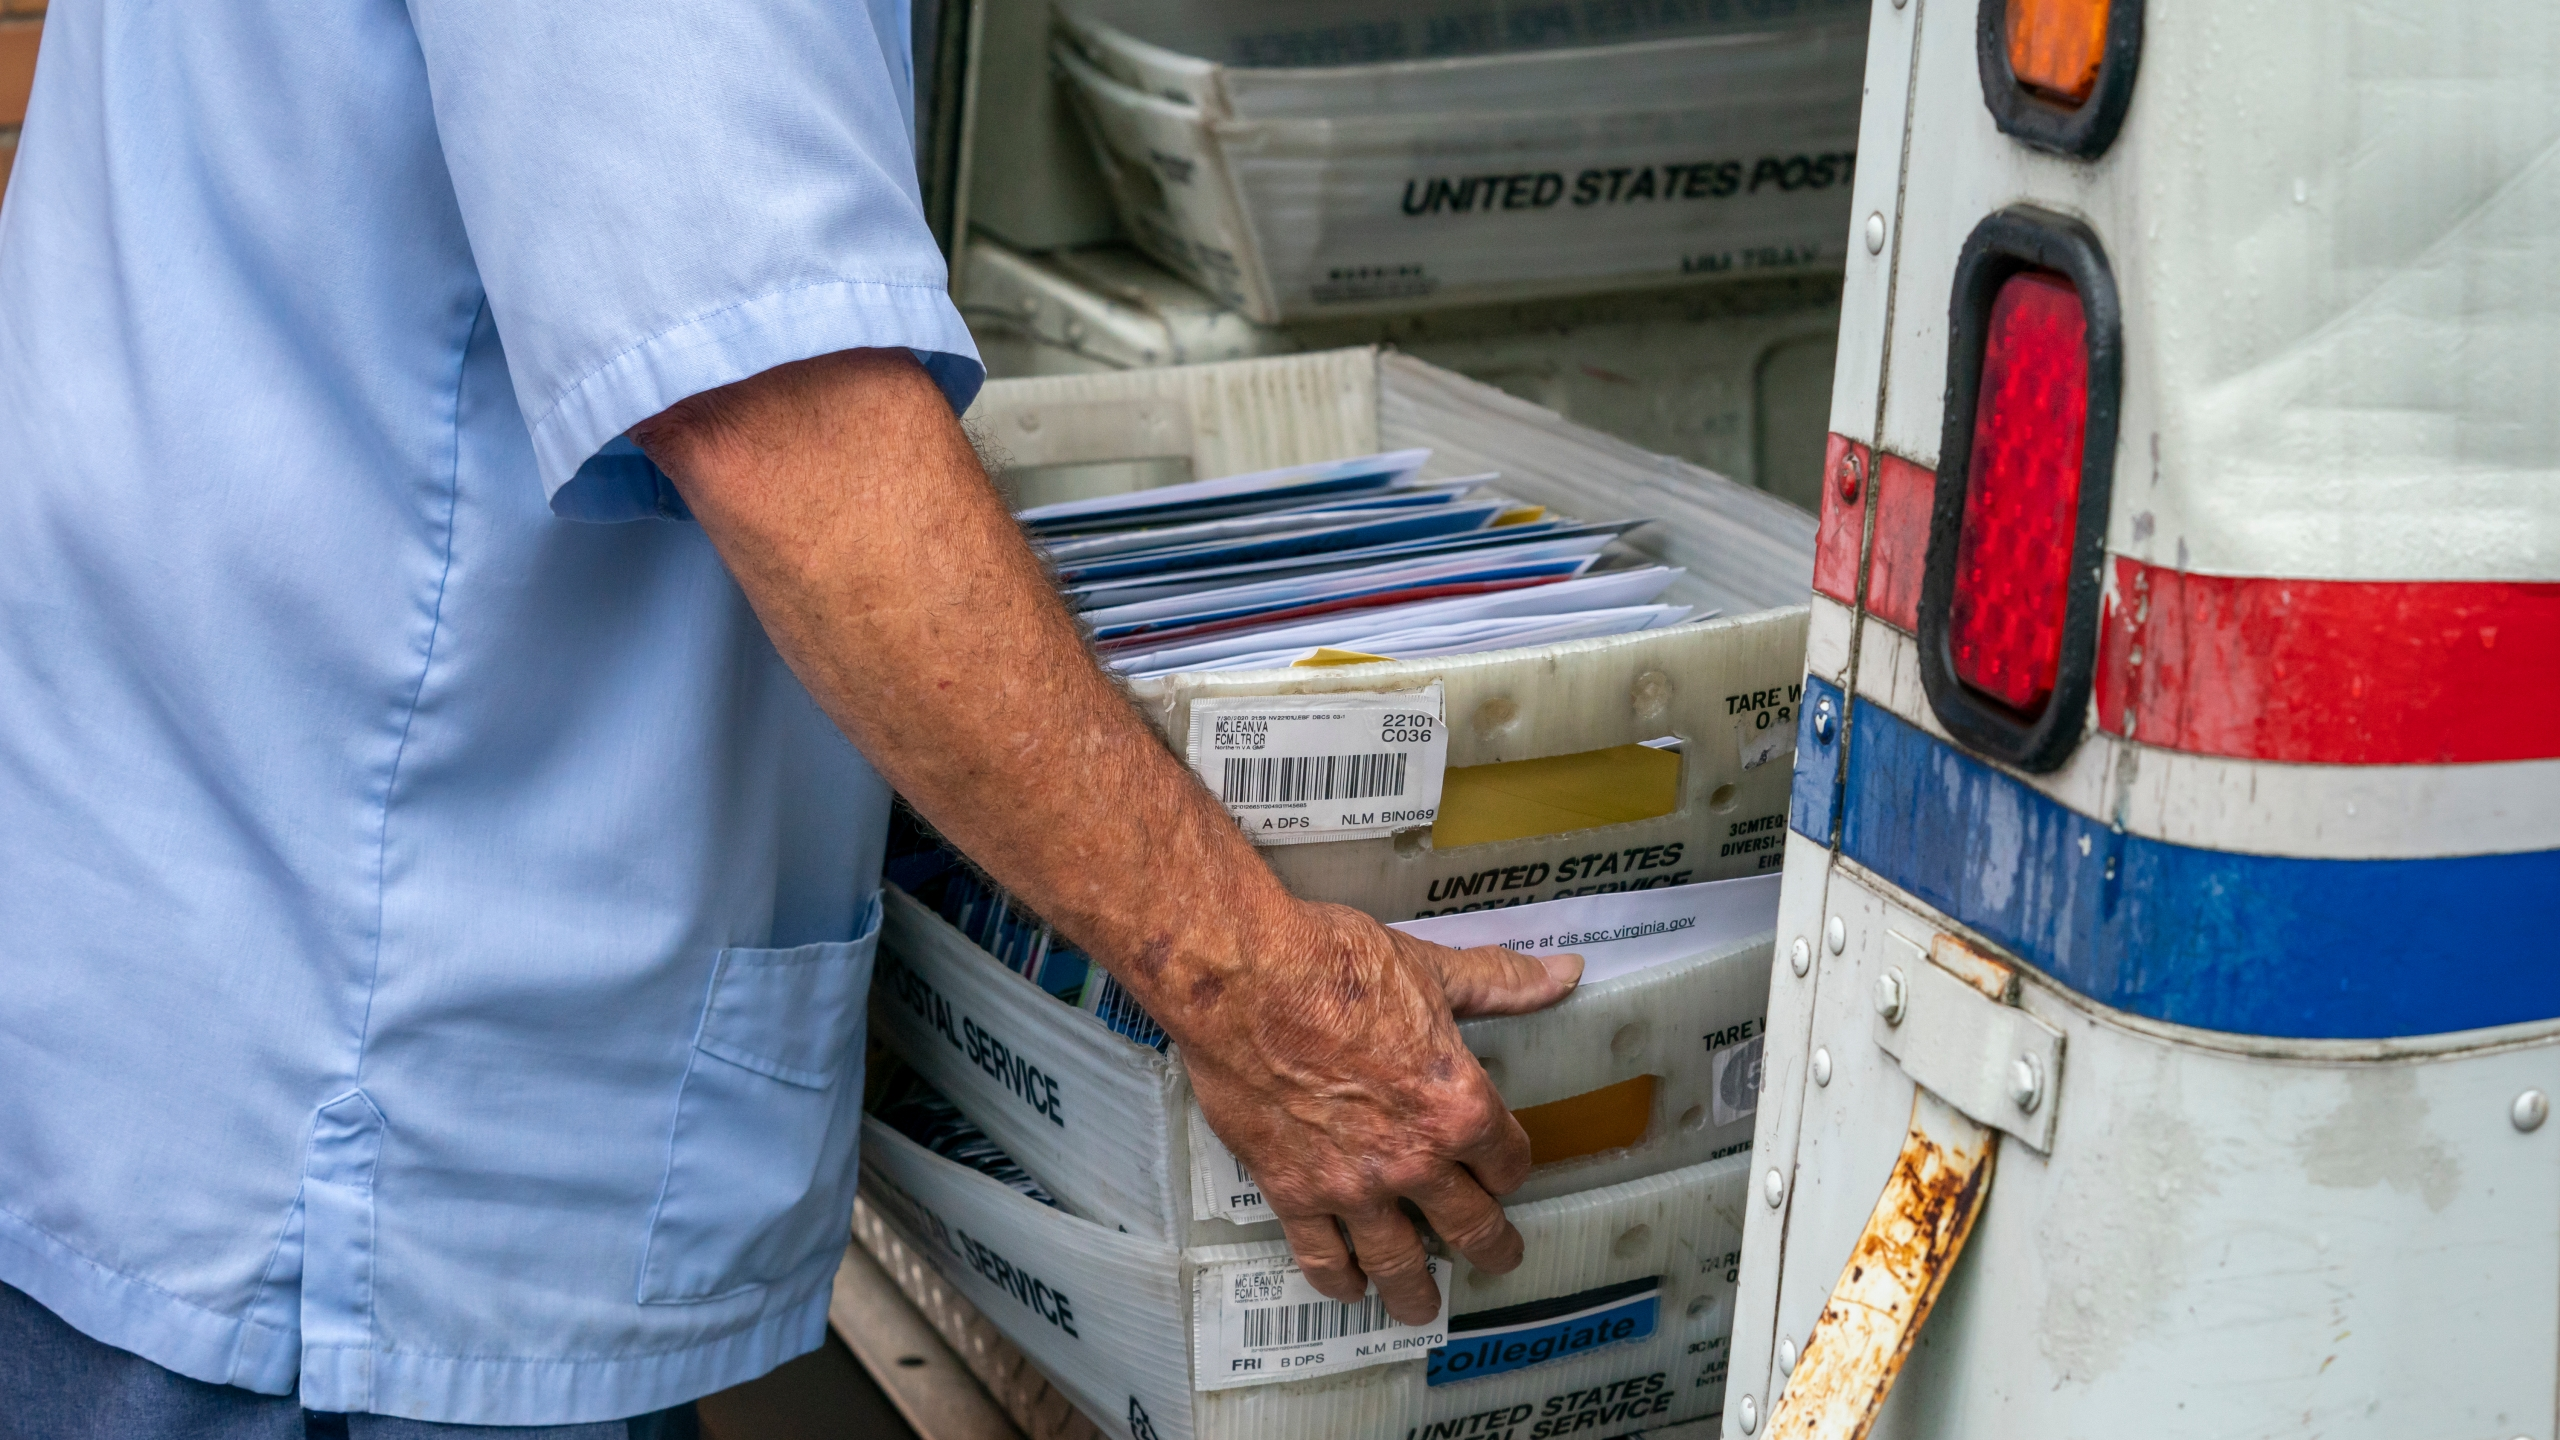 FILE - In this July 31, 2020, file photo, letter carriers load mail trucks for deliveries at a U.S. Postal Service facility in McLean, Va. (AP Photo/J. Scott Applewhite, File)